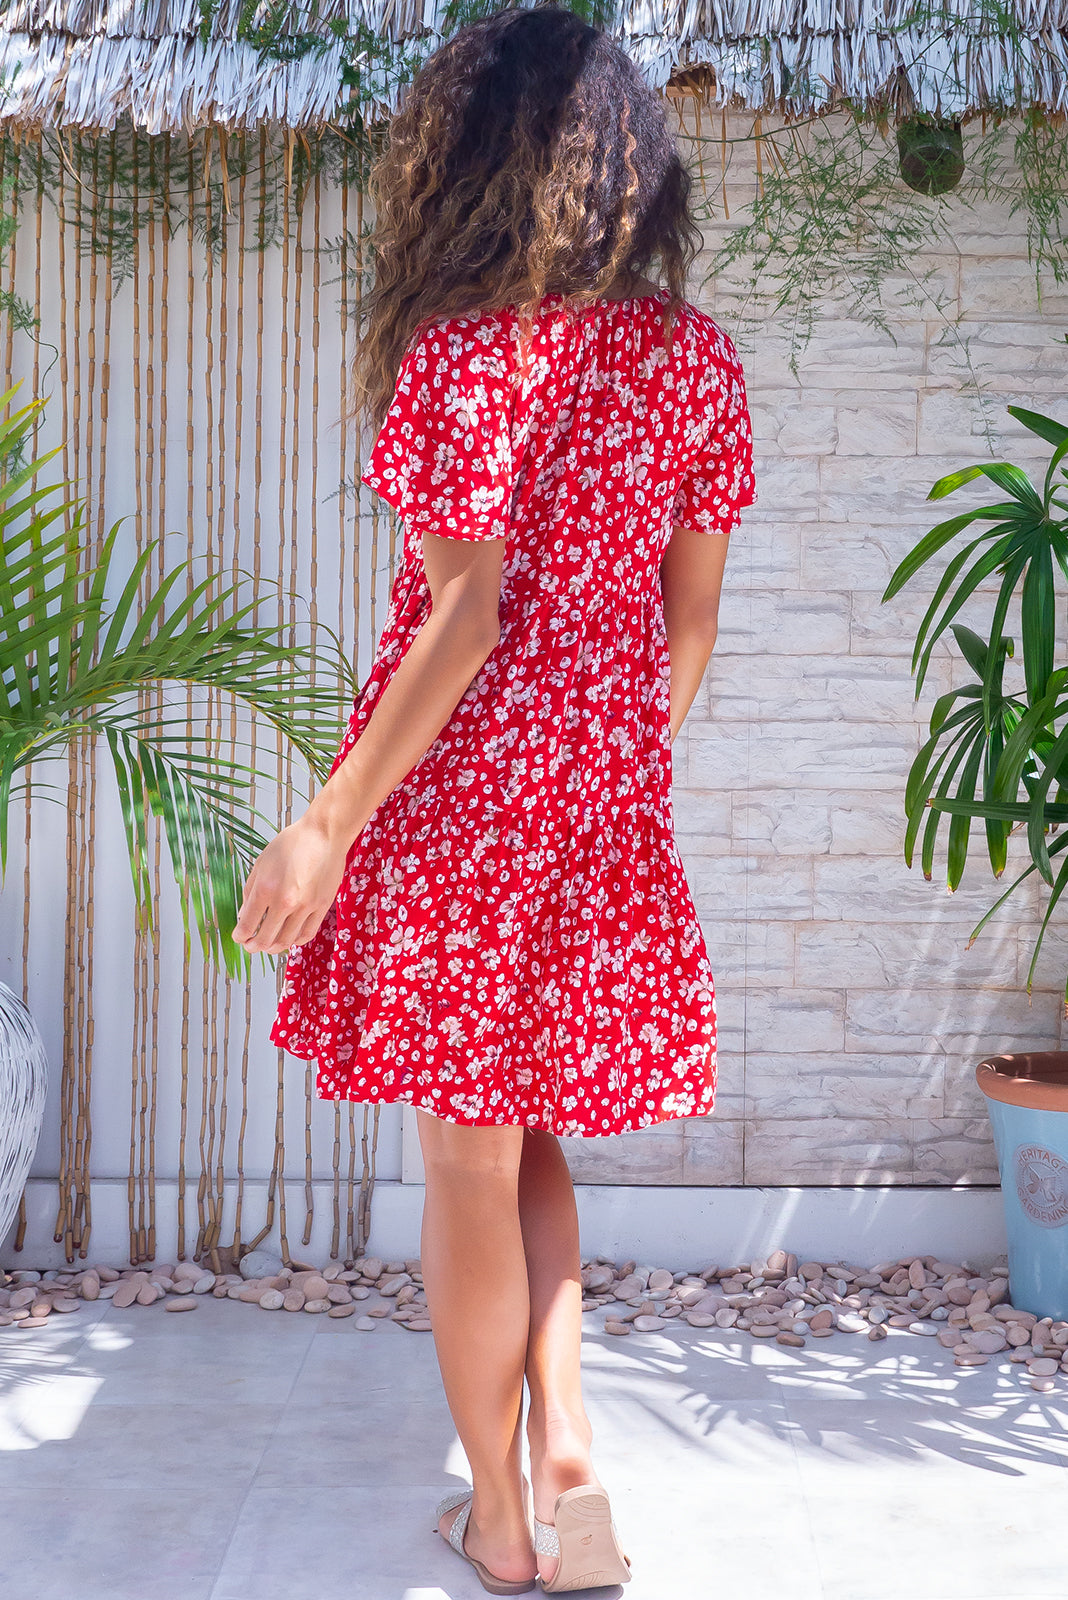 The Viva Ruby Red Dress features adjustable neckline with tassel ended ties, elasticated back of neckline, flutter sleeves, side pockets, tiered skirt and 100% rayon in red floral print.